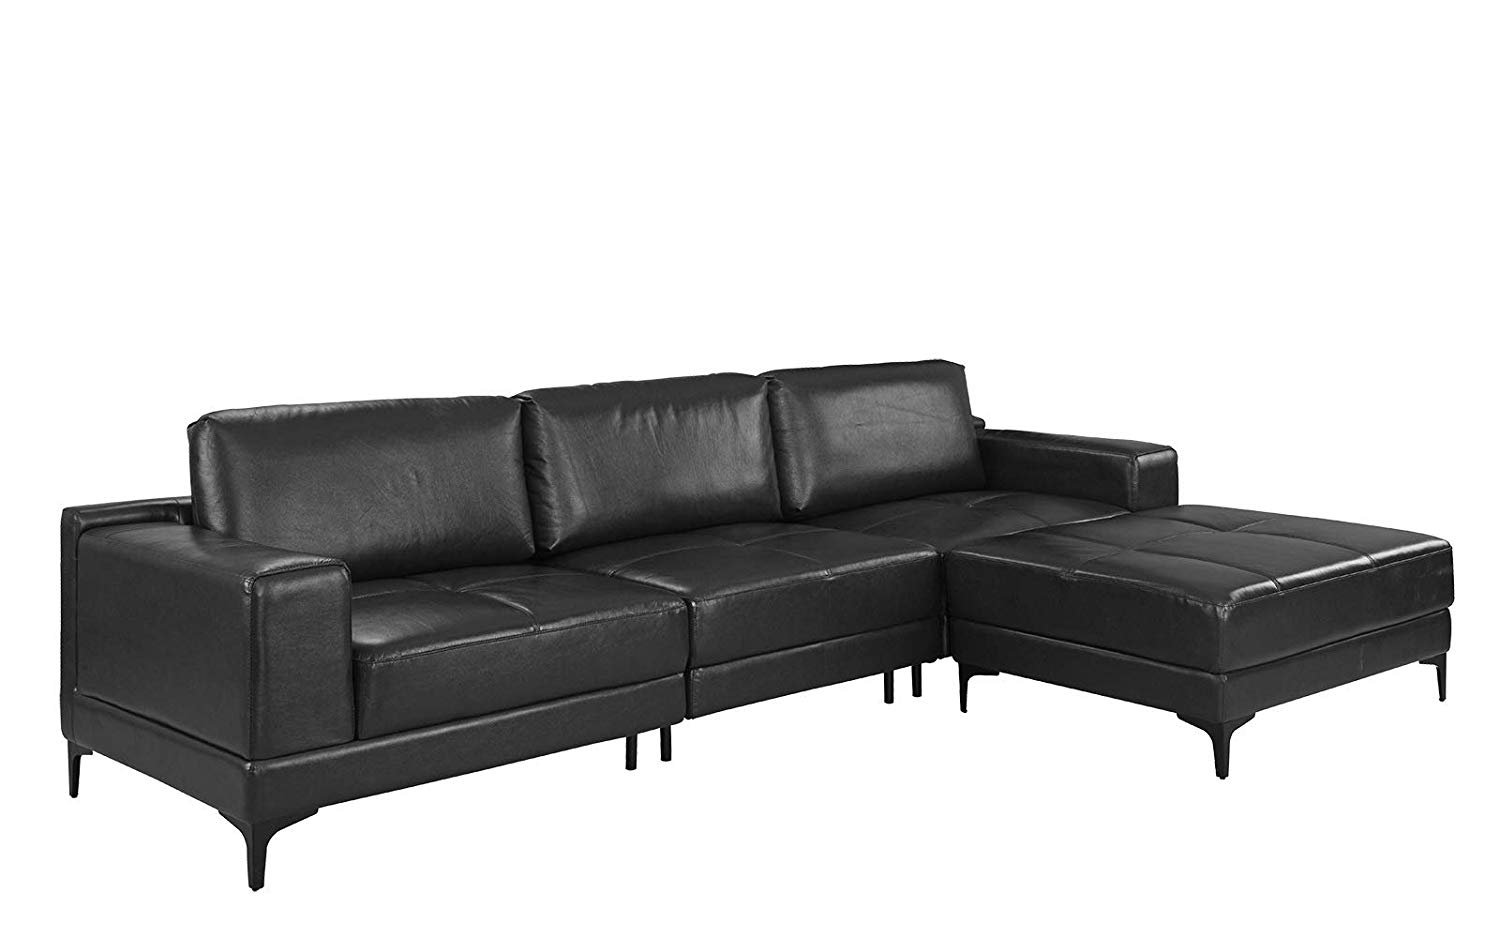 Details About Modern Leather Sectional Sofa 114 9 Inch Living Room L Shape Couch Black